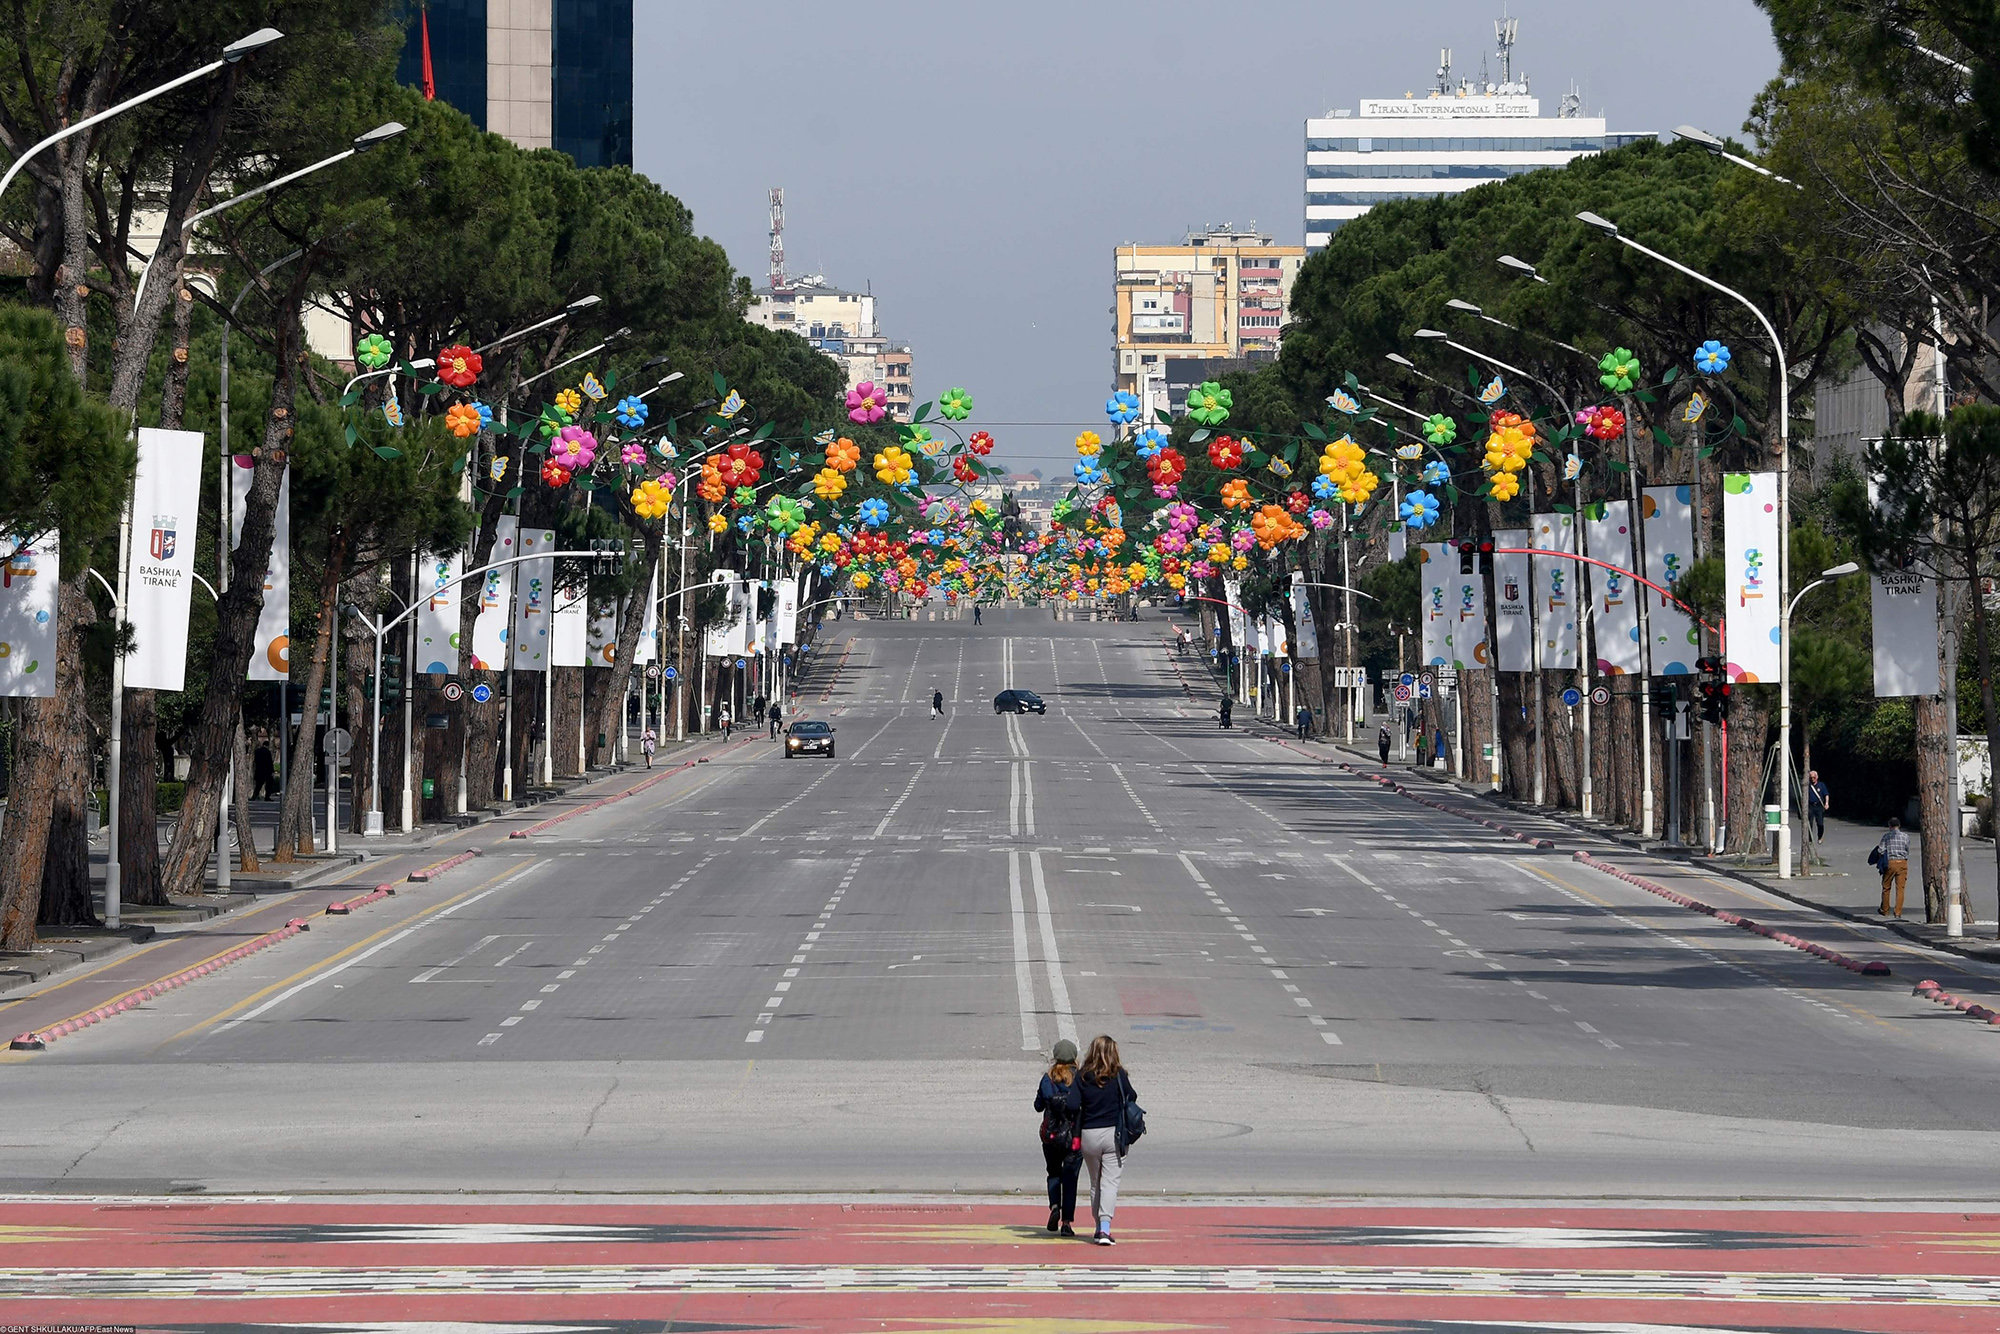 A picture taken on March 14, 2020, shows the empty main Boulevard of Tirana, amid the outbreak of COVID-19, the new coronavirus. - Albania has stepped up measures to contain the spread of COVID 19 and banned circulation of all cars (except ambulances and supplies) for three days and urged people to stay home as the number of infected people increased to 38. (Photo by Gent SHKULLAKU / AFP)